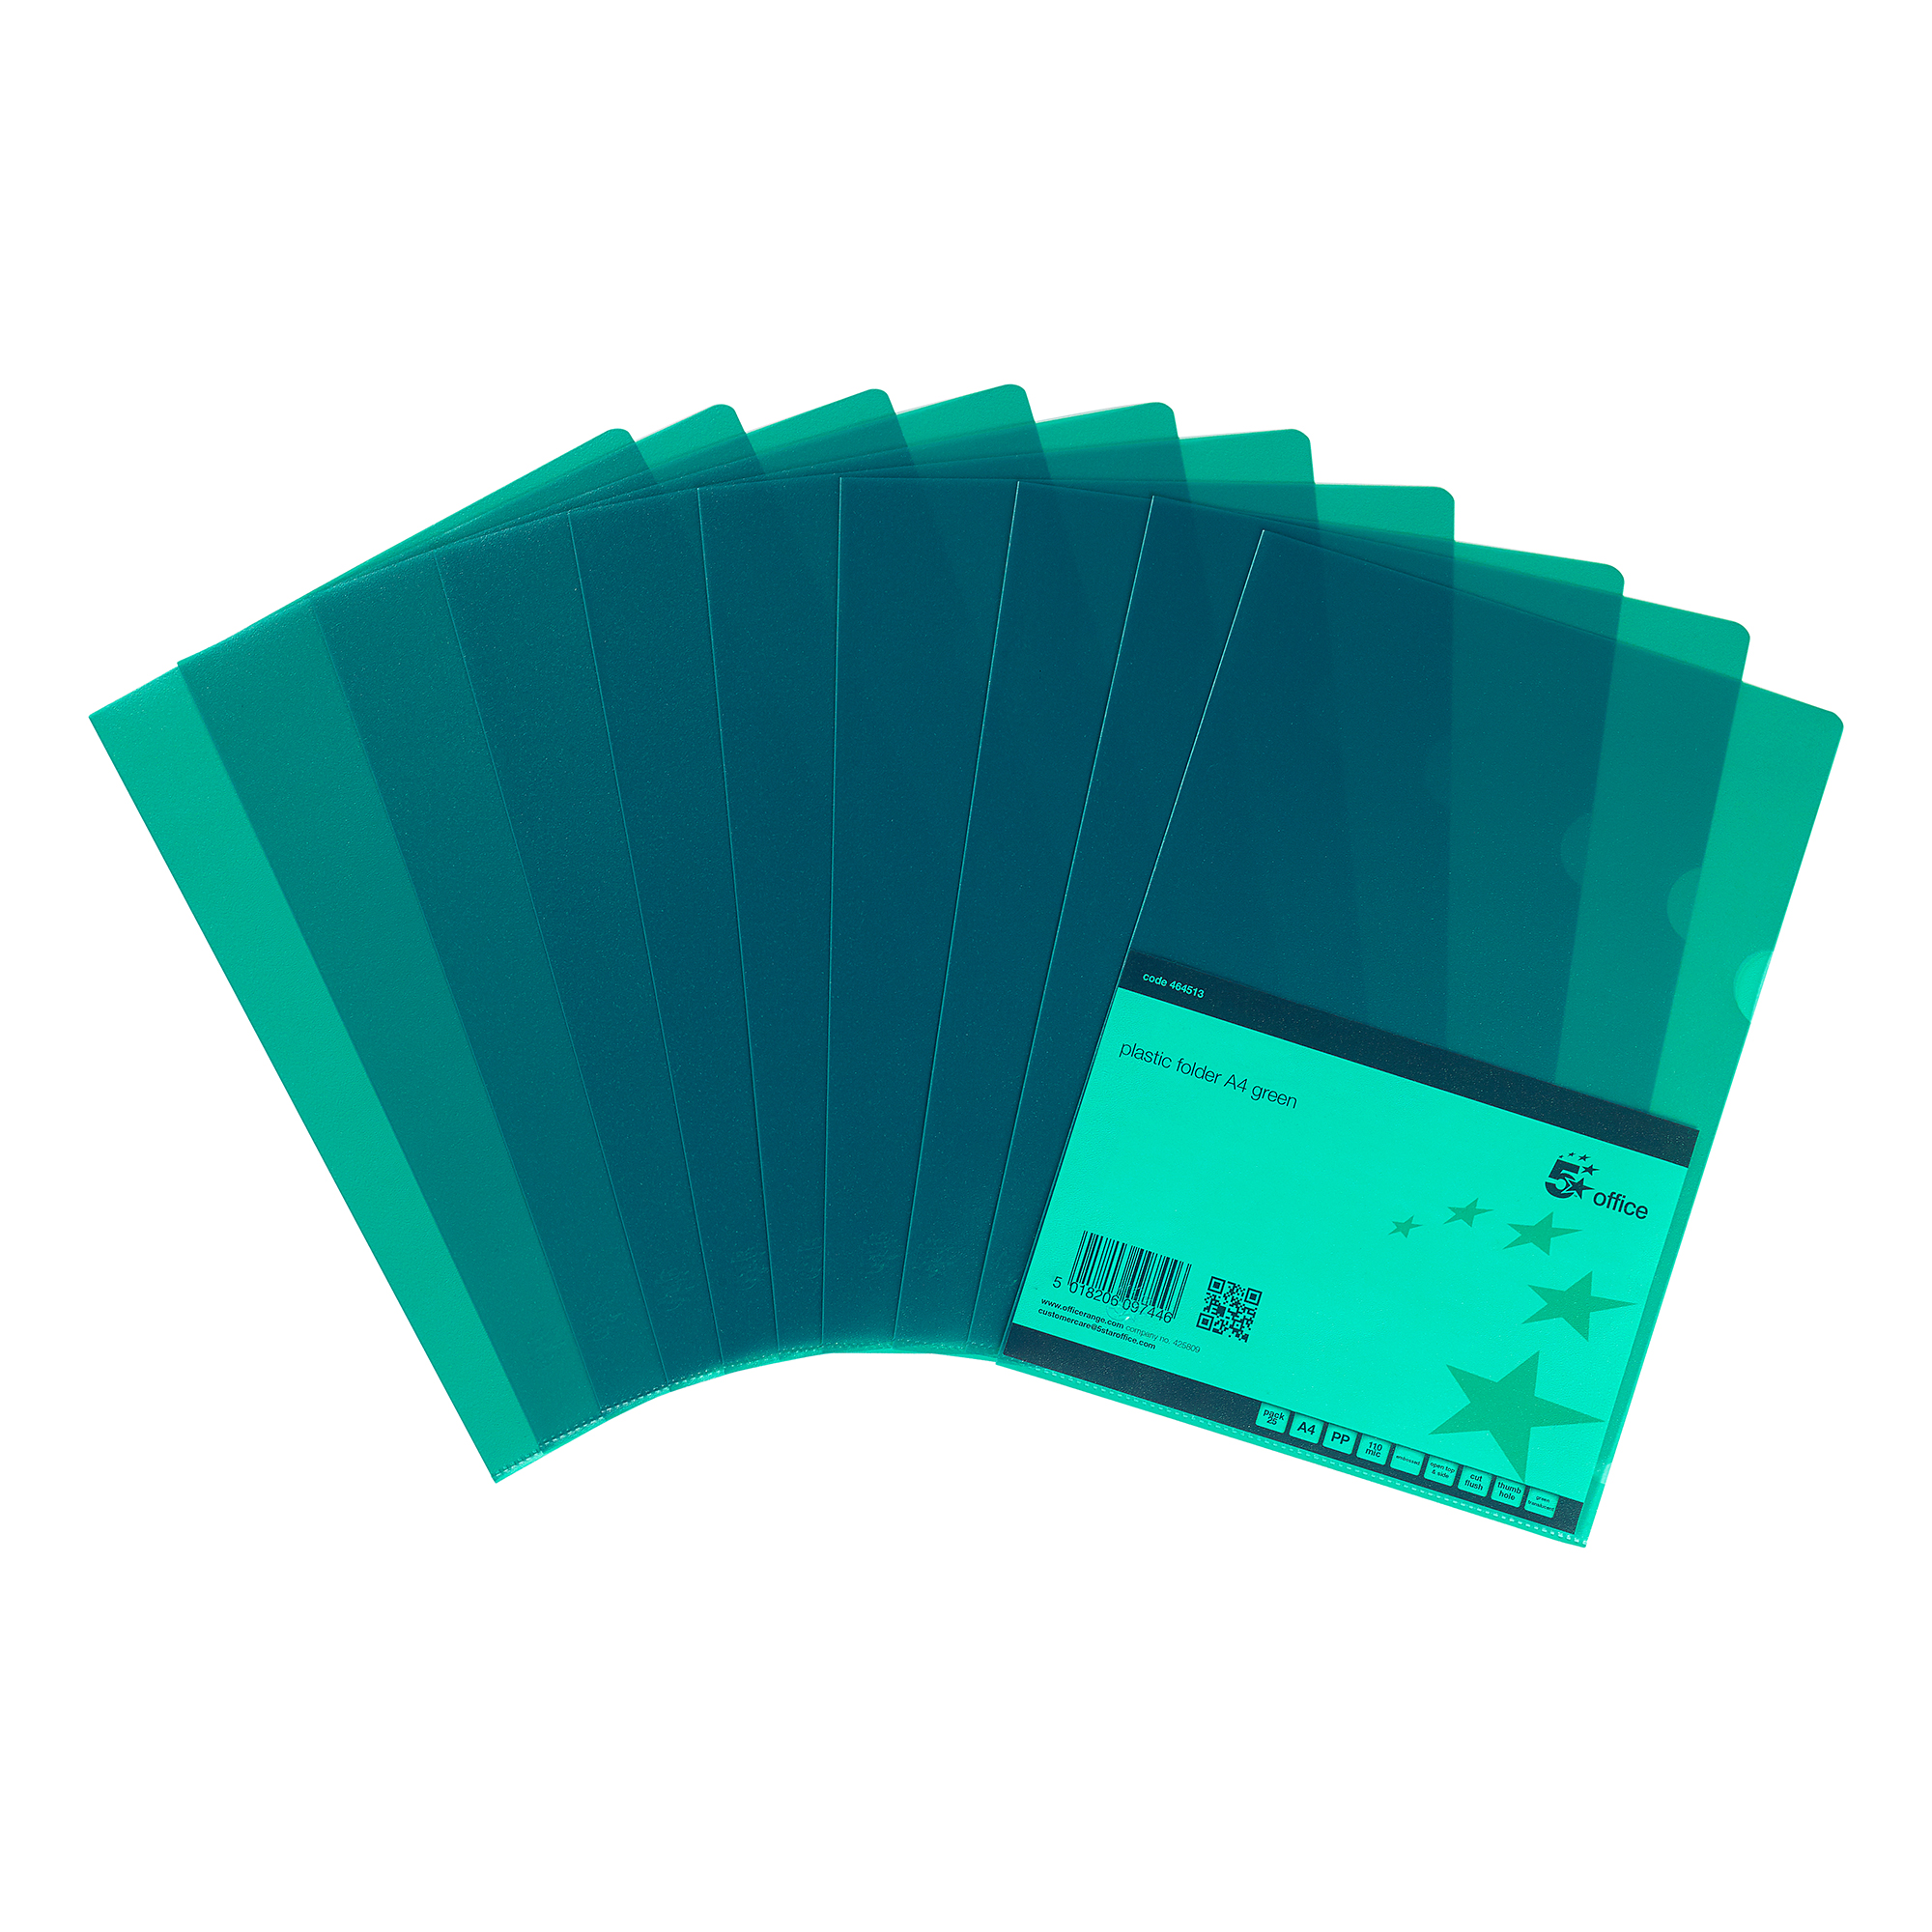 5 Star Office Folder Cut Flush Polypropylene Copy-safe Translucent 120 Micron A4 Green [Pack 25]